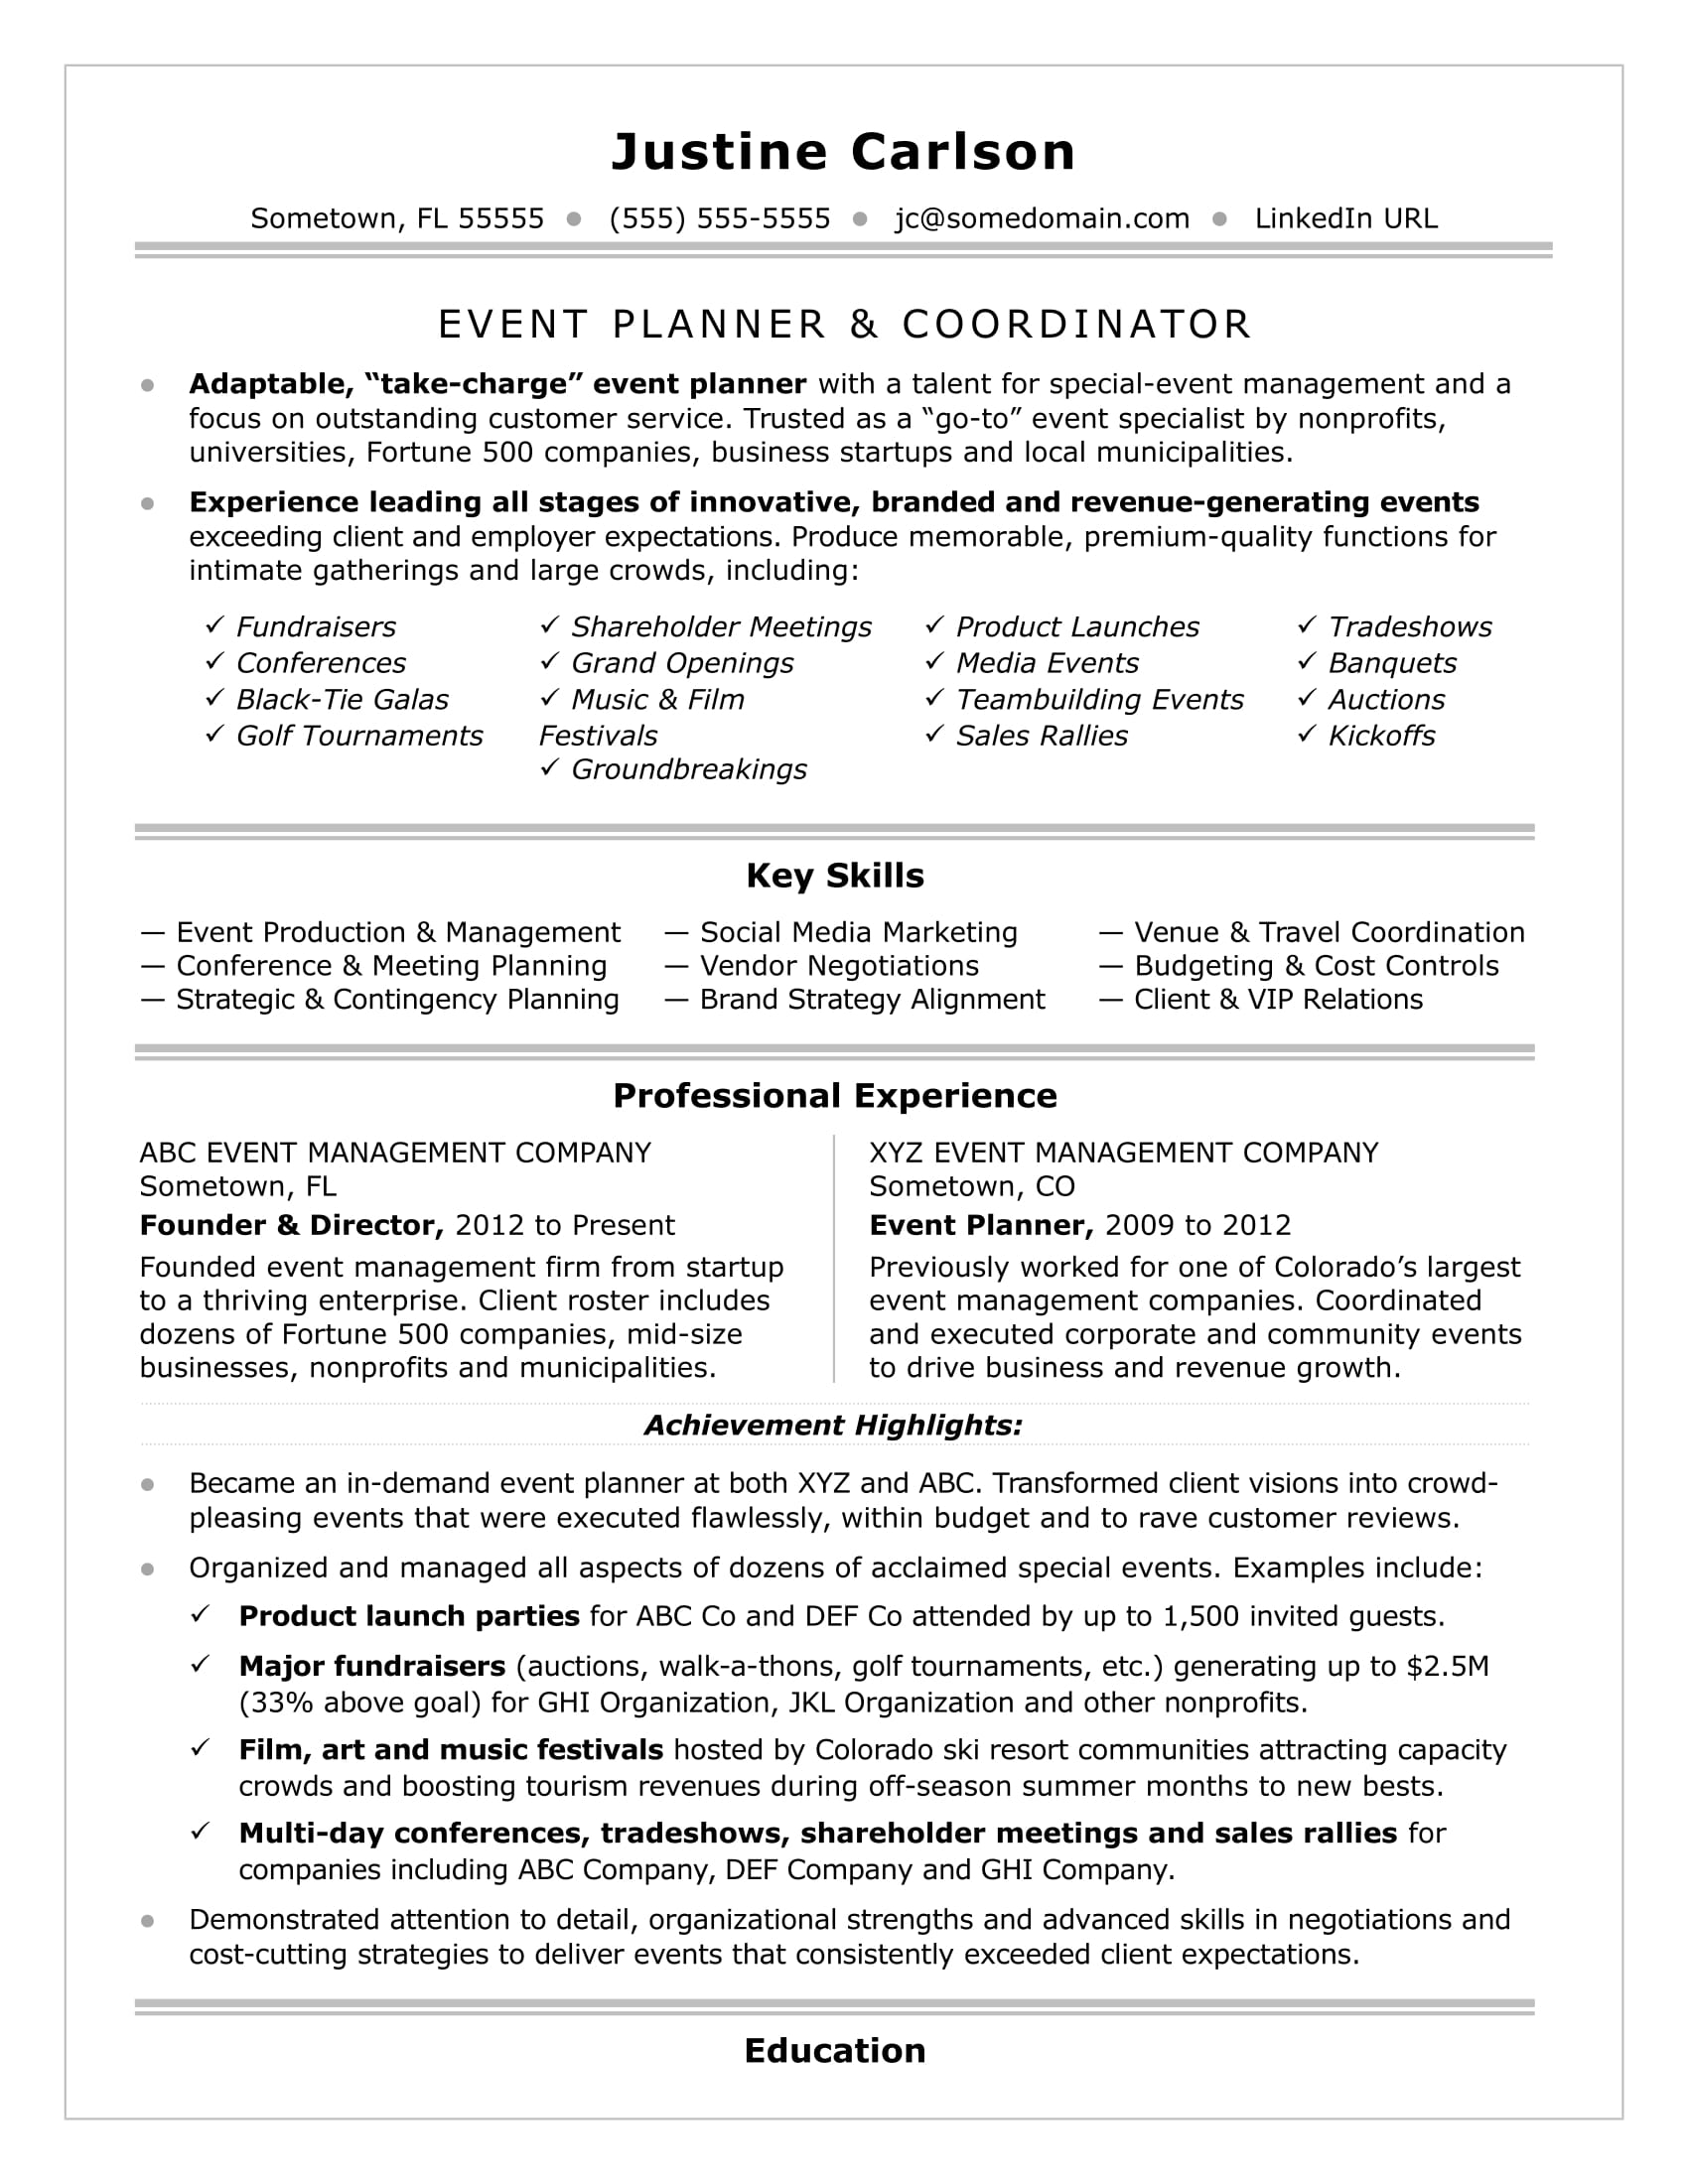 Prty Manager Resume | Resume For Event Planner Lexu Tk